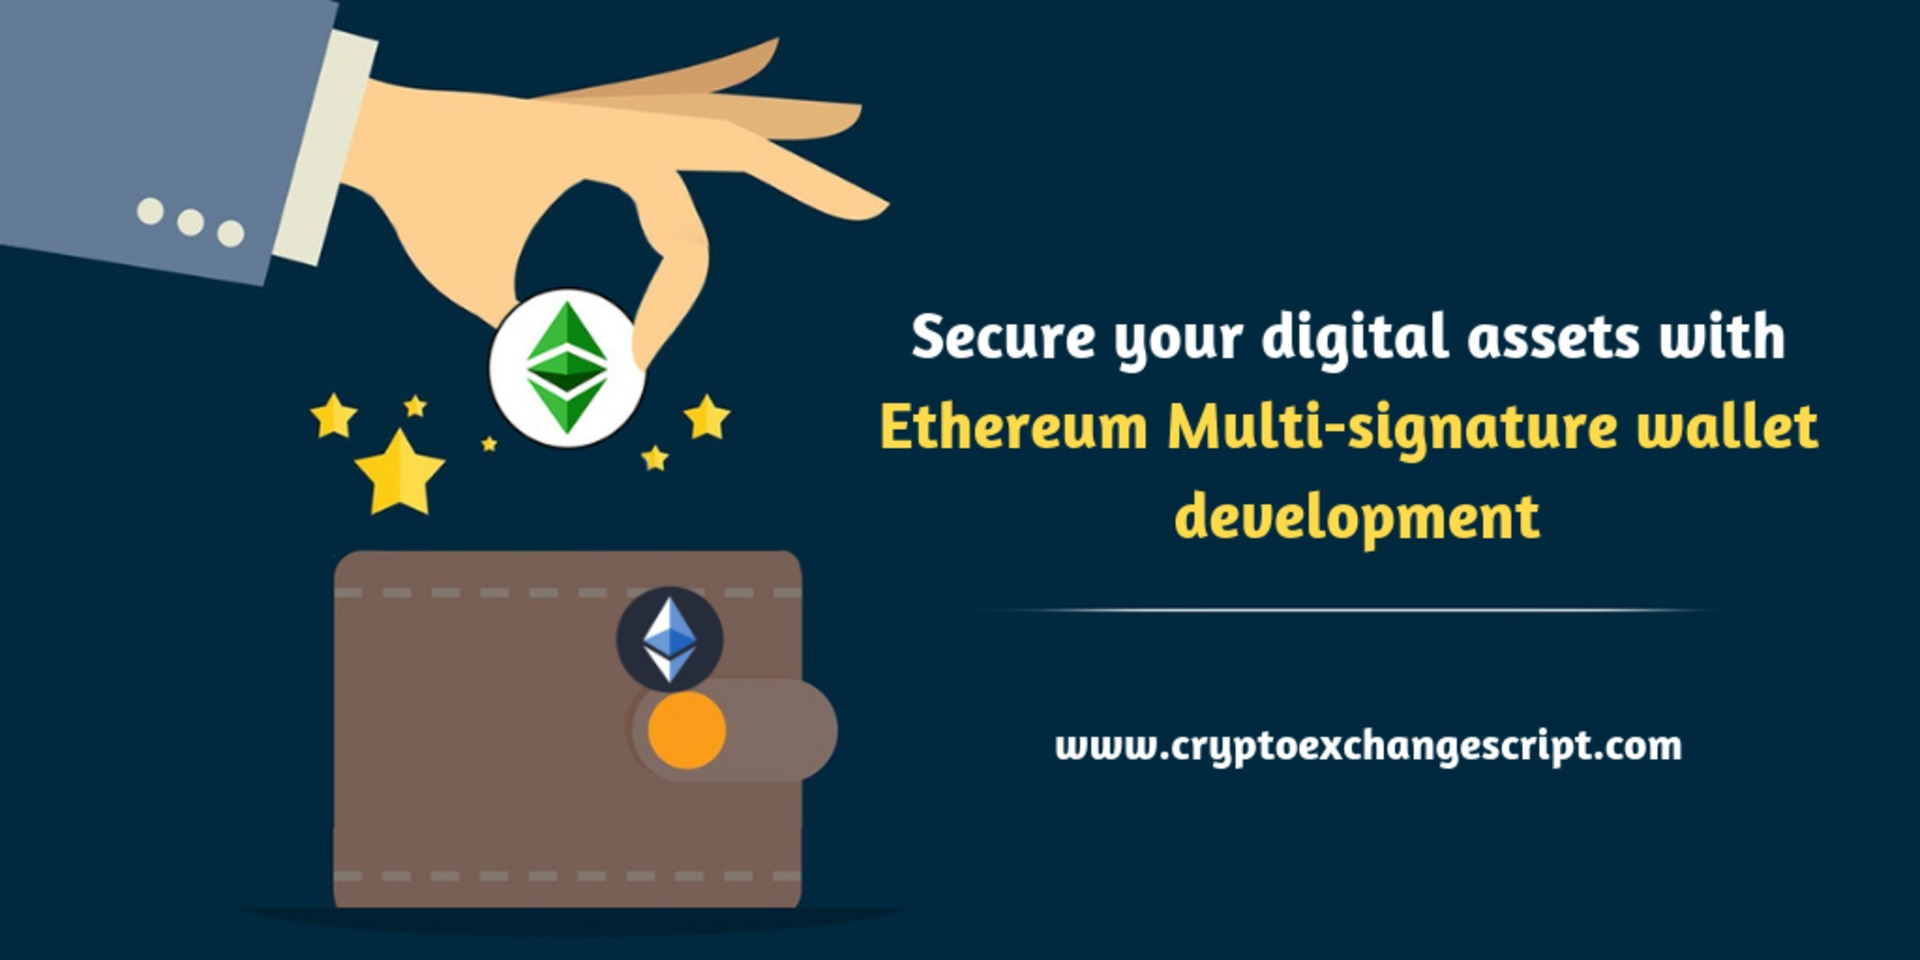 Secure your digital assets with ethereum multi signature wallet development  image